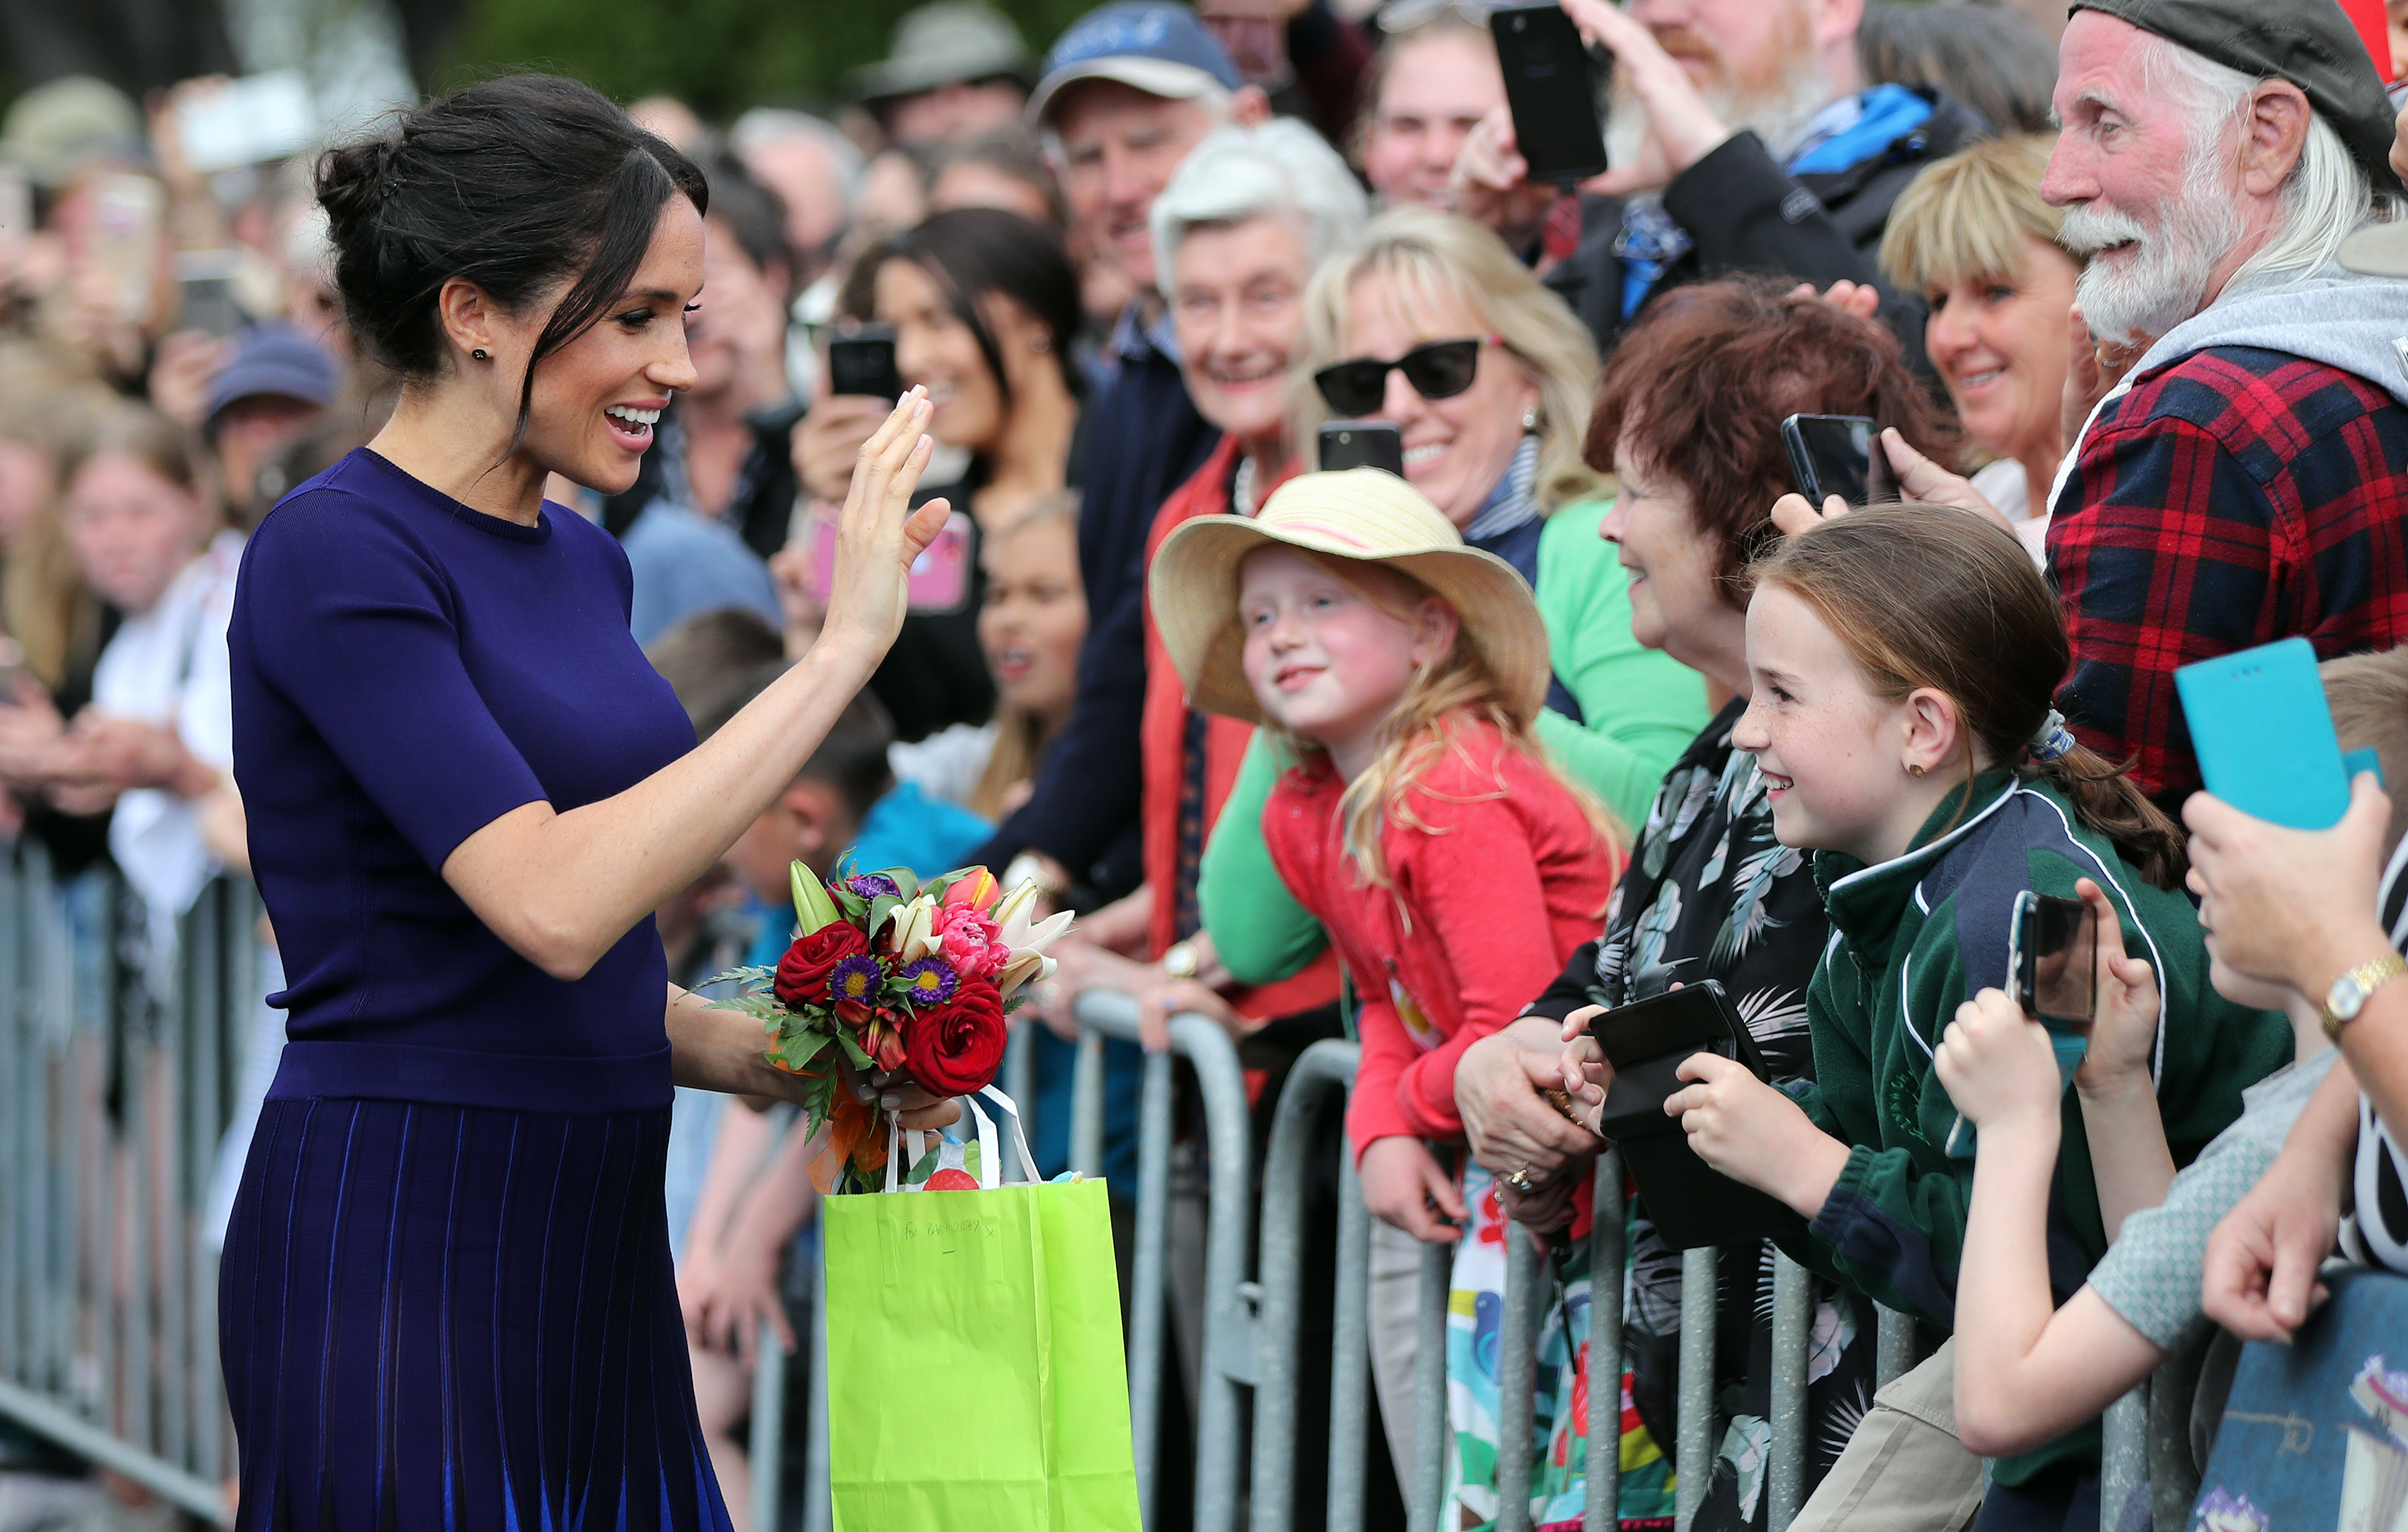 Meghan, Duchess of Sussex greets the public at the public walkabout at the Rotorua Government Gardens on October 31, 2018 in Rotorua, New Zealand.